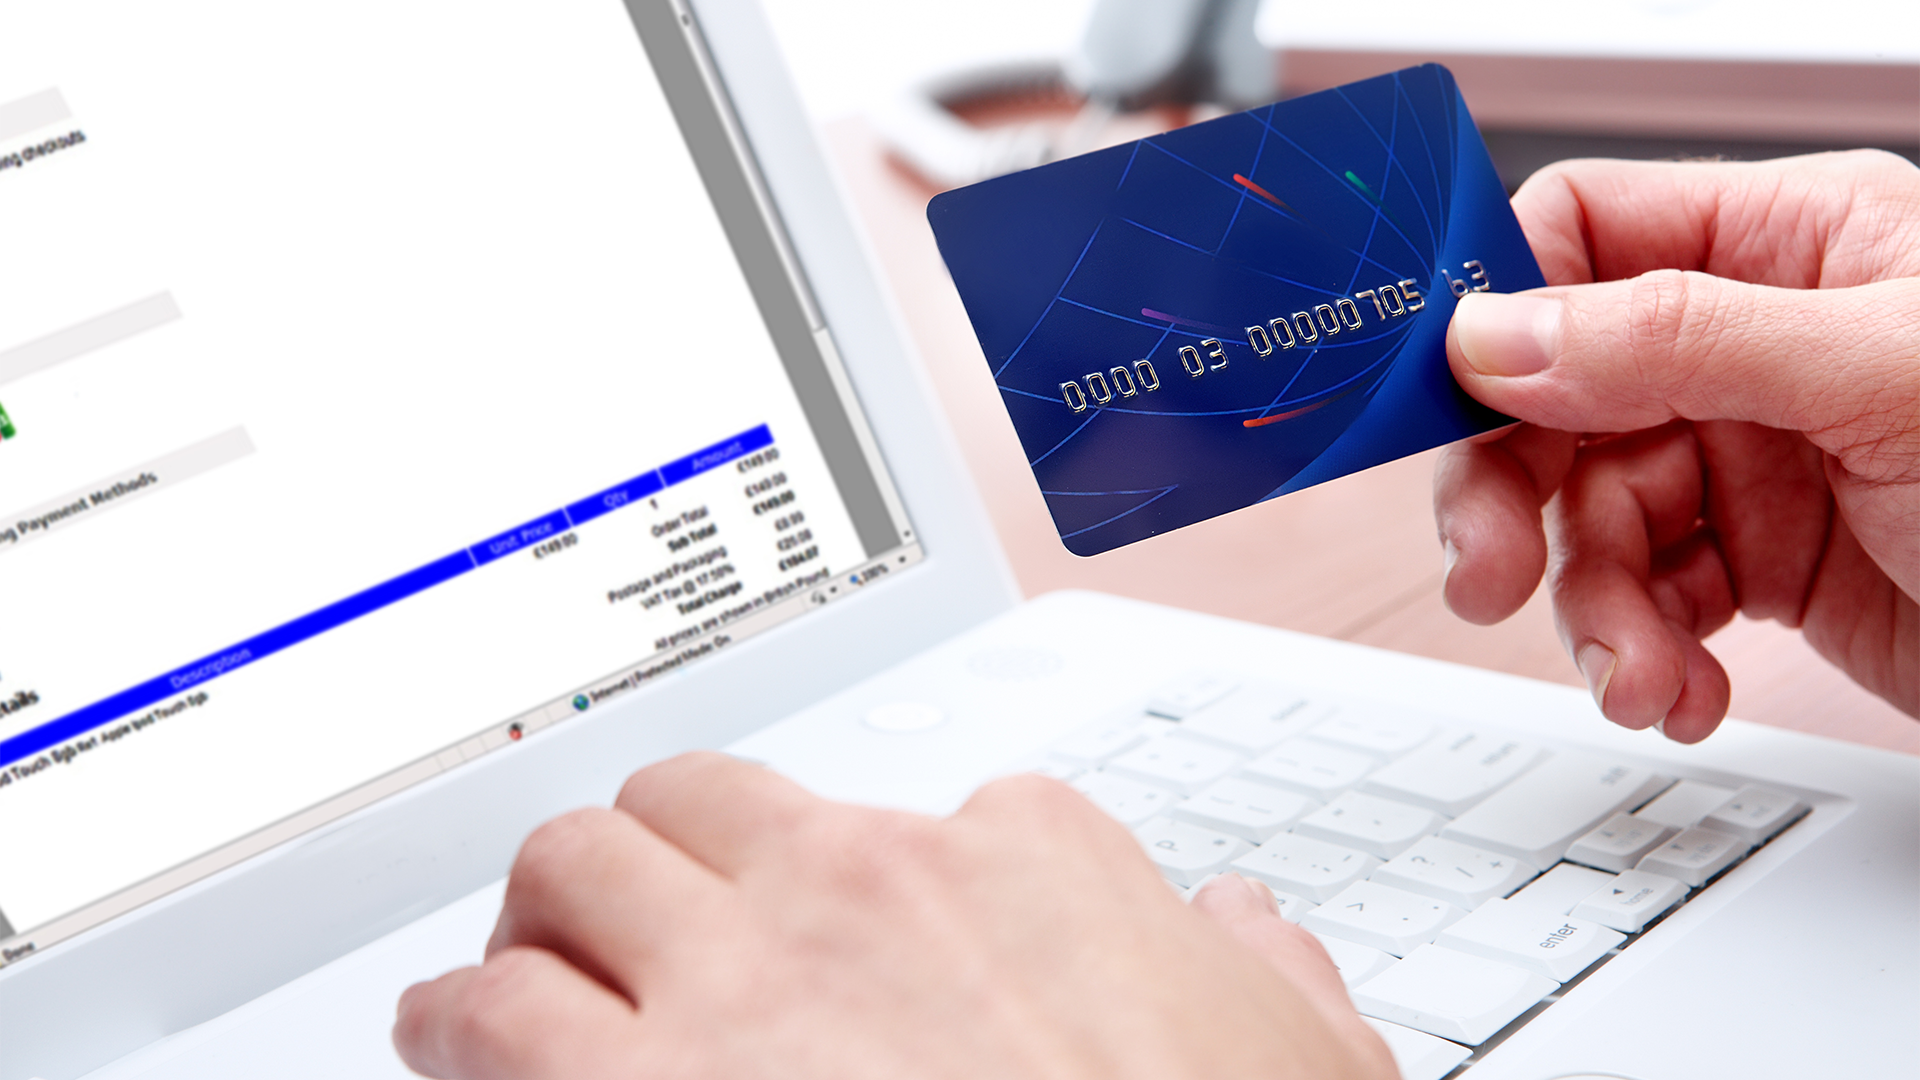 What are the Benefits of Having a Credit Card?